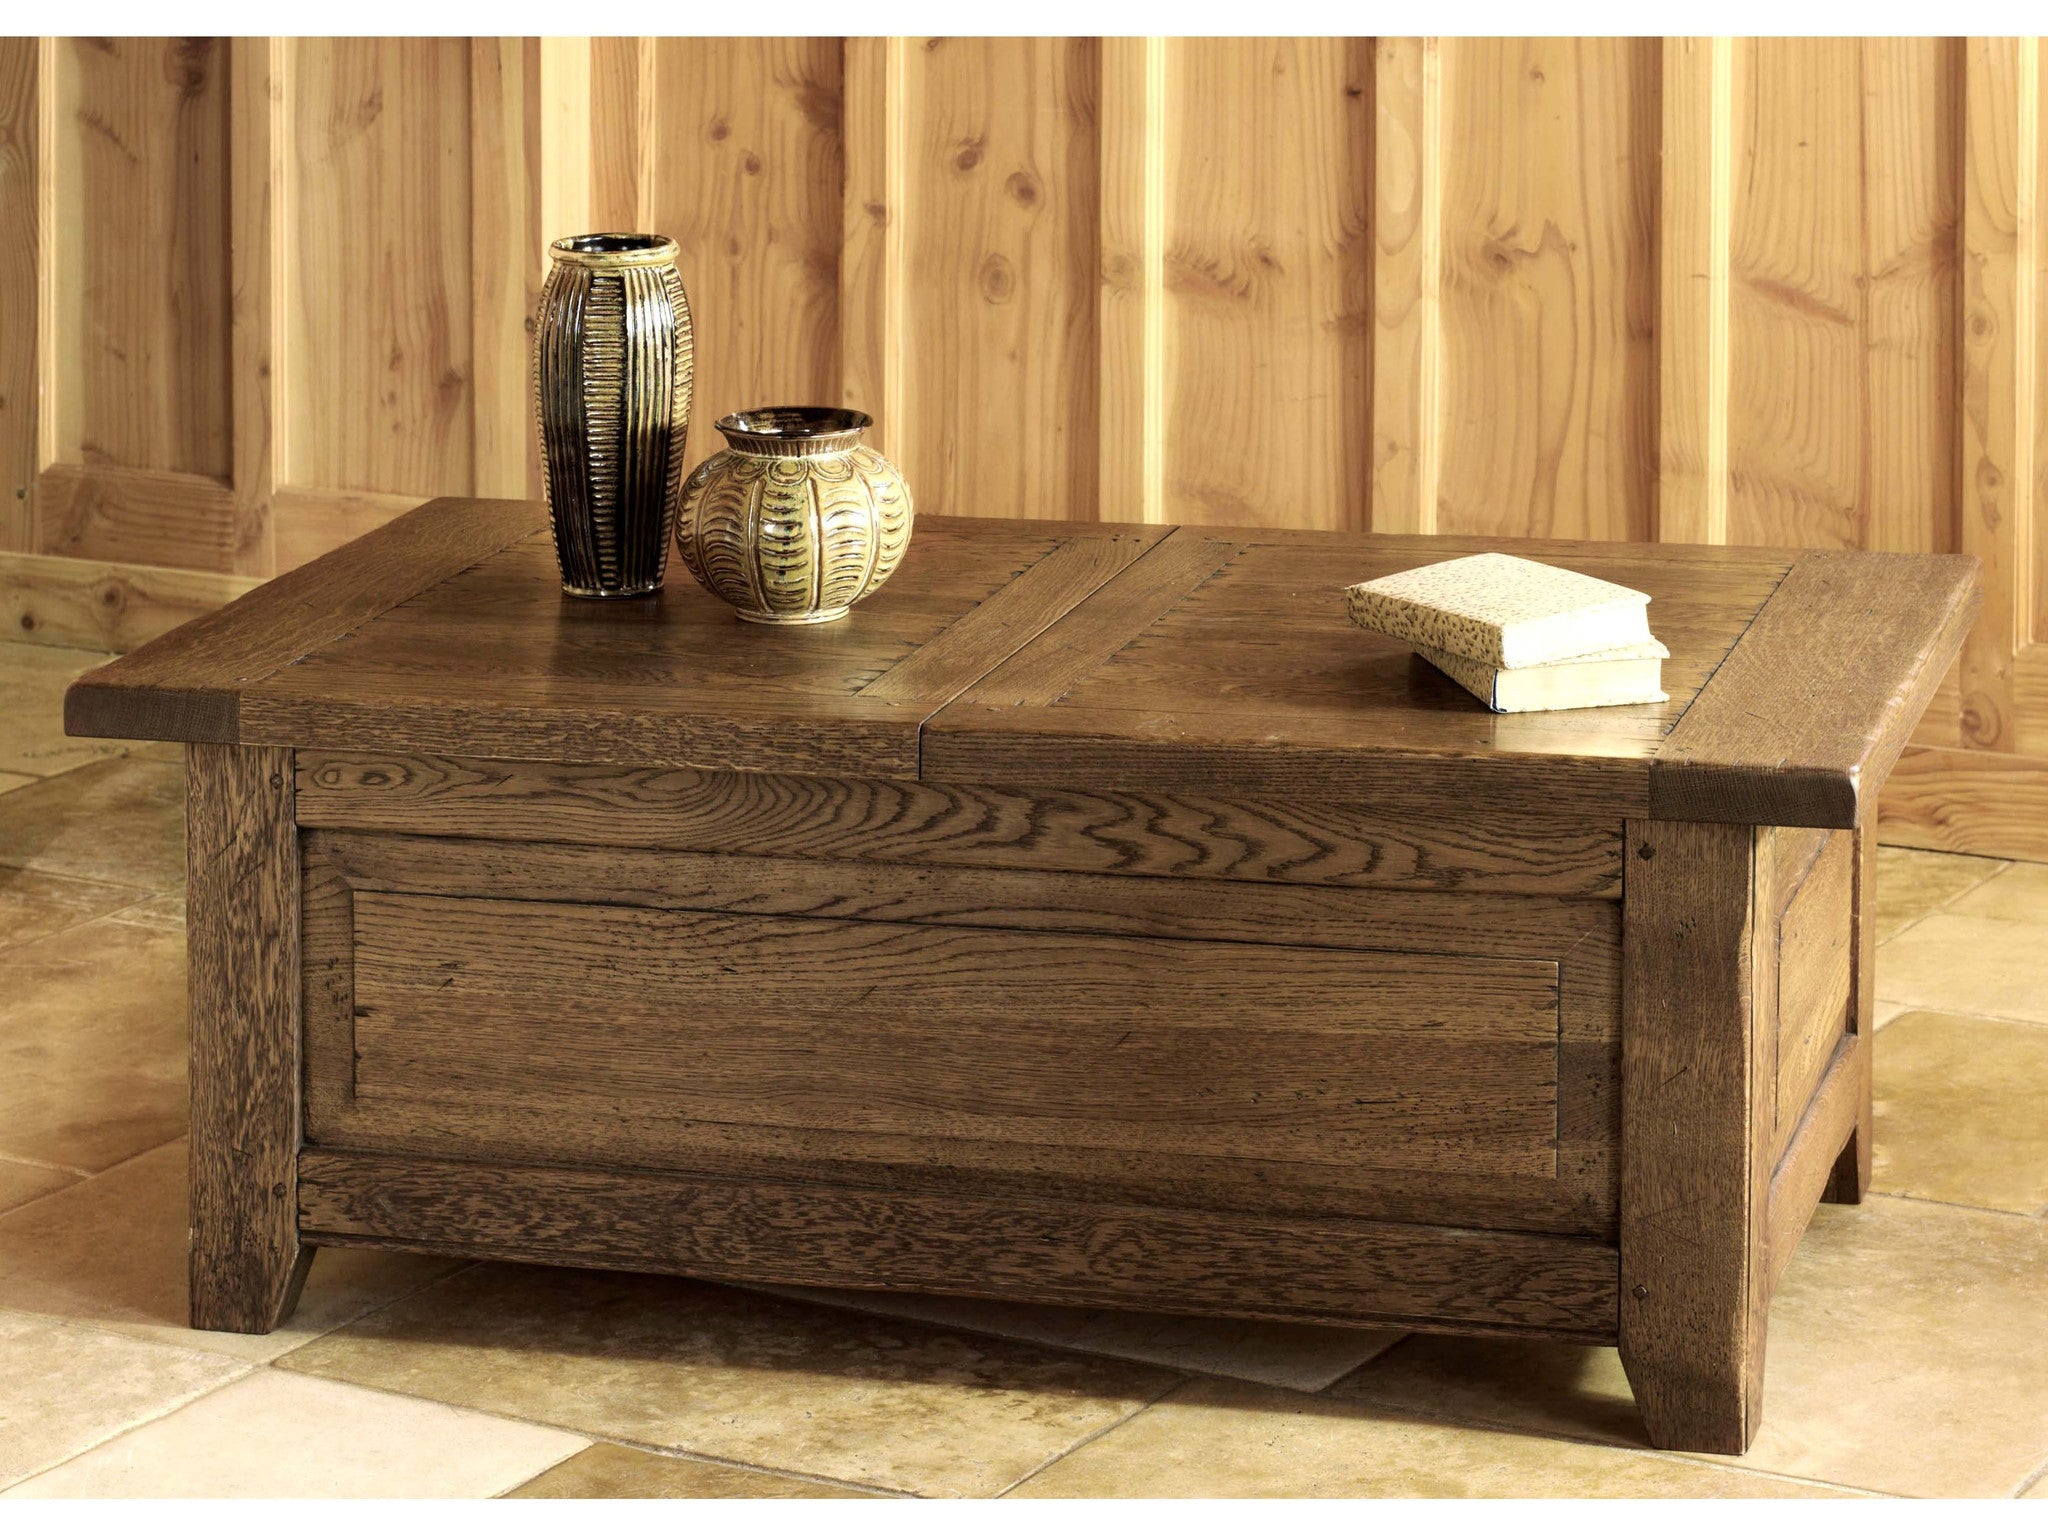 French Valley Oak coffee table trunk with central opening